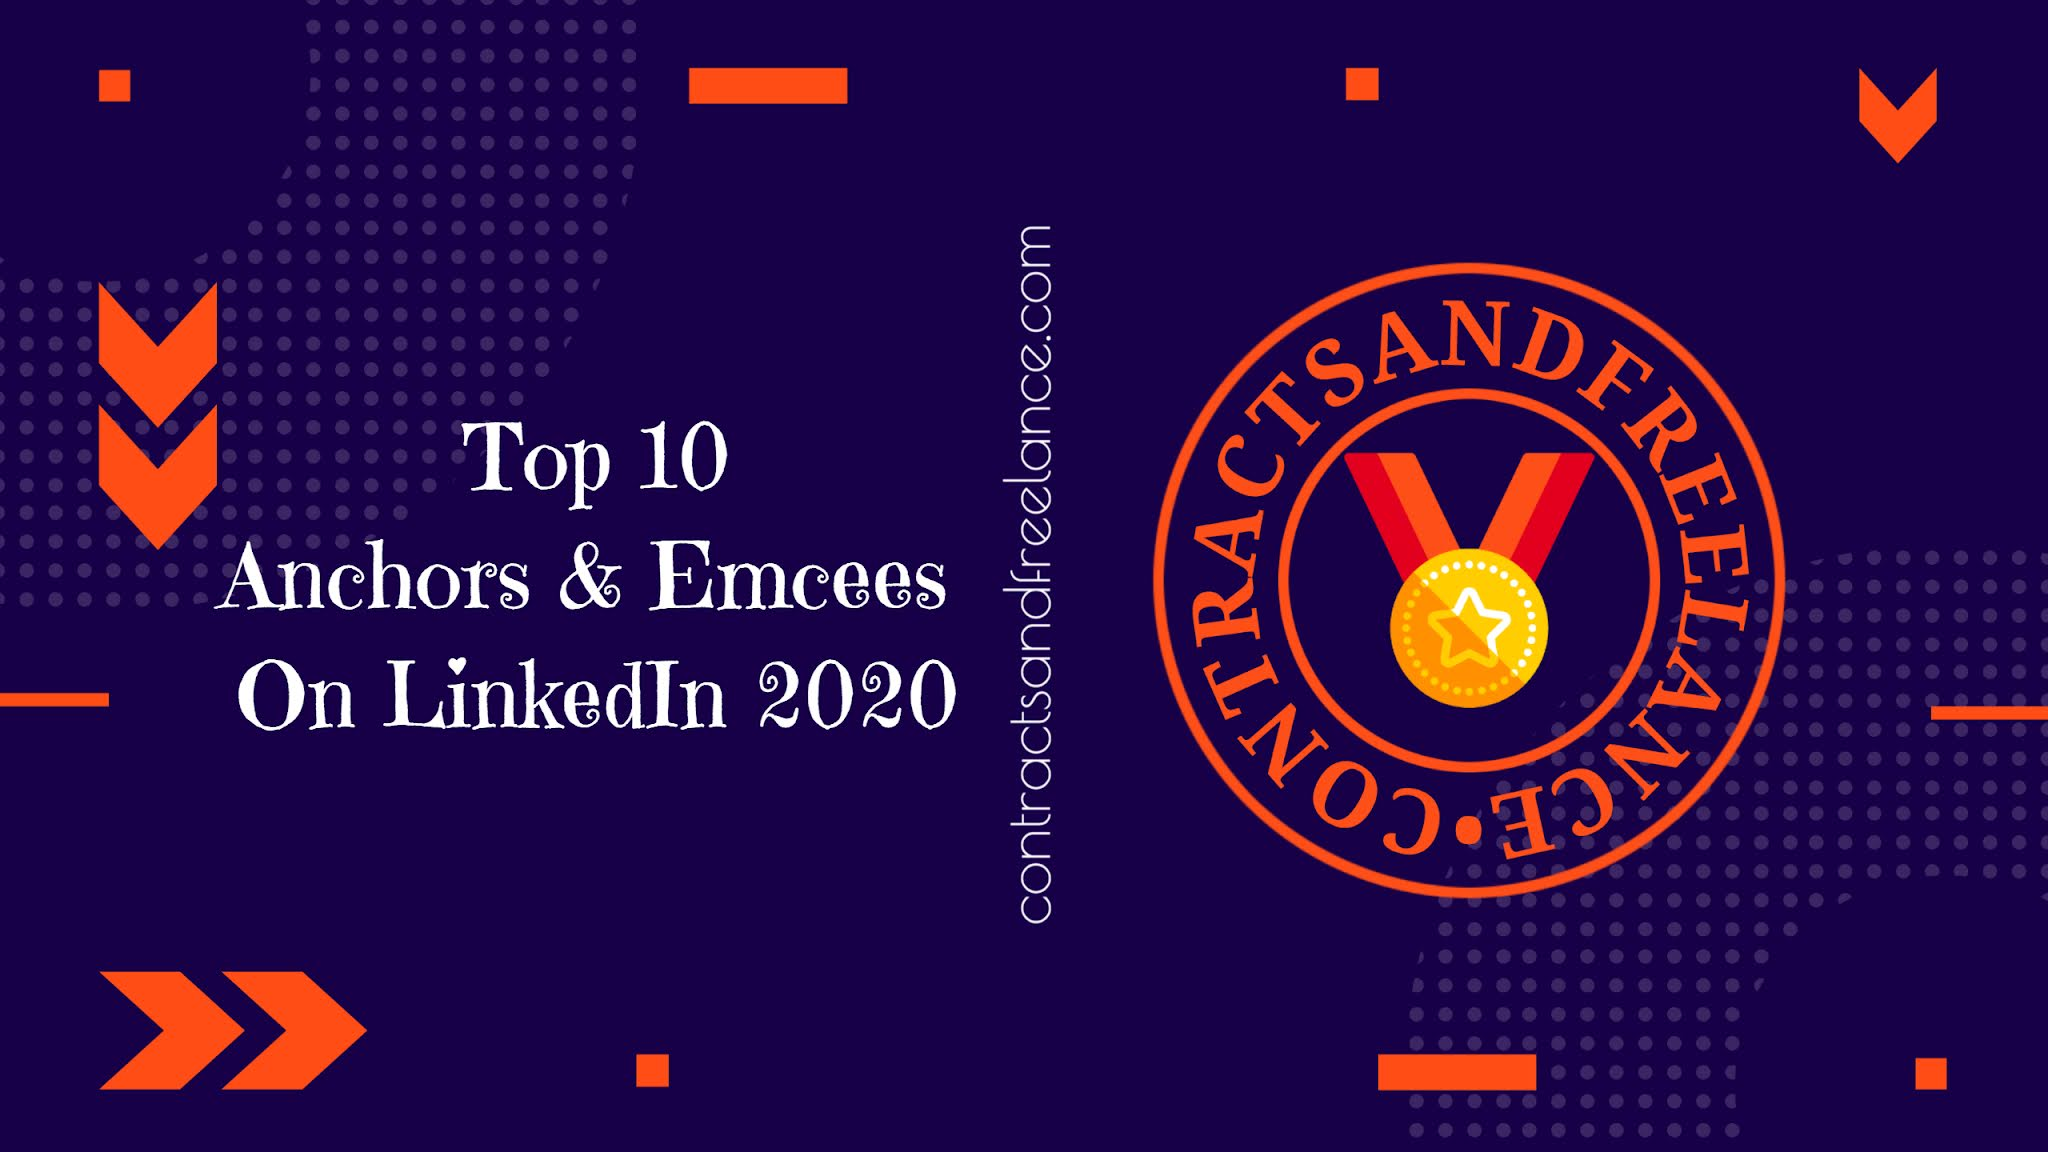 Top 10 Anchors and Emcees On LinkedIn, Best Corporate Event Hosts and Show Presenter, Best Anchors and Hosts, Best Corporate Presenter and Hosts